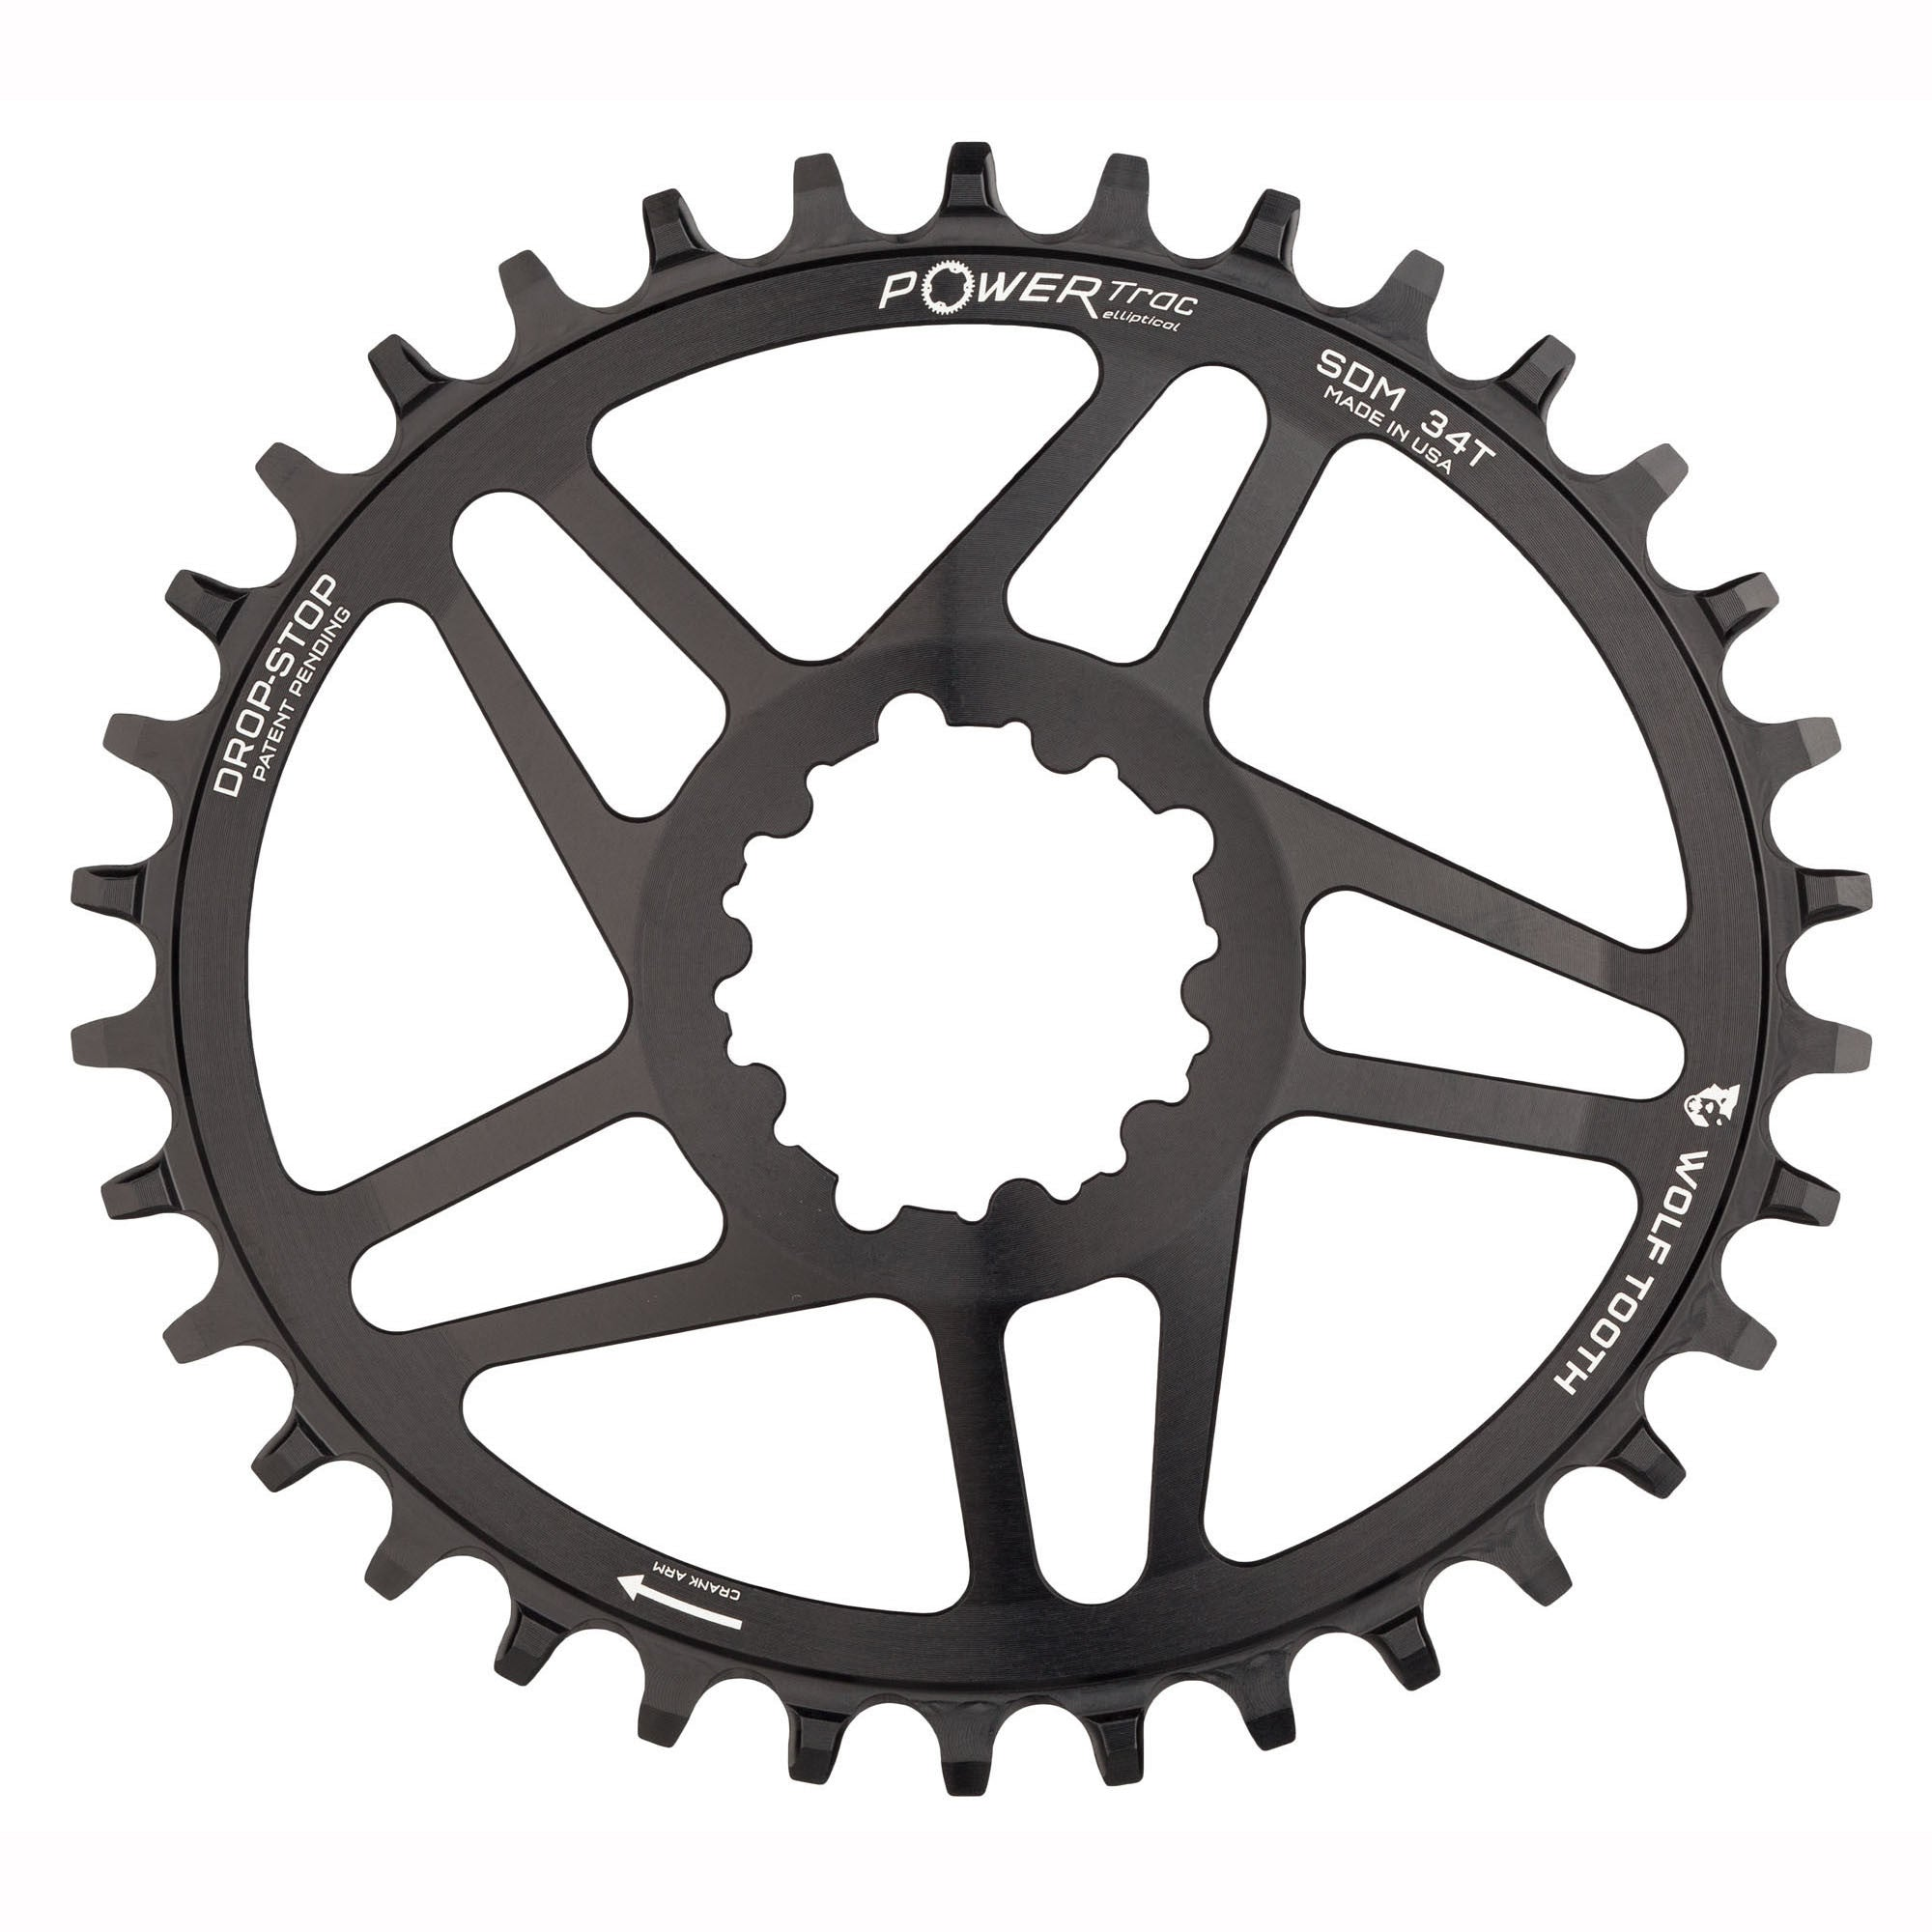 SRAM 3-Bolt Direct Mount Chainrings 38t, Wolf Tooth Direct Mount Chainring